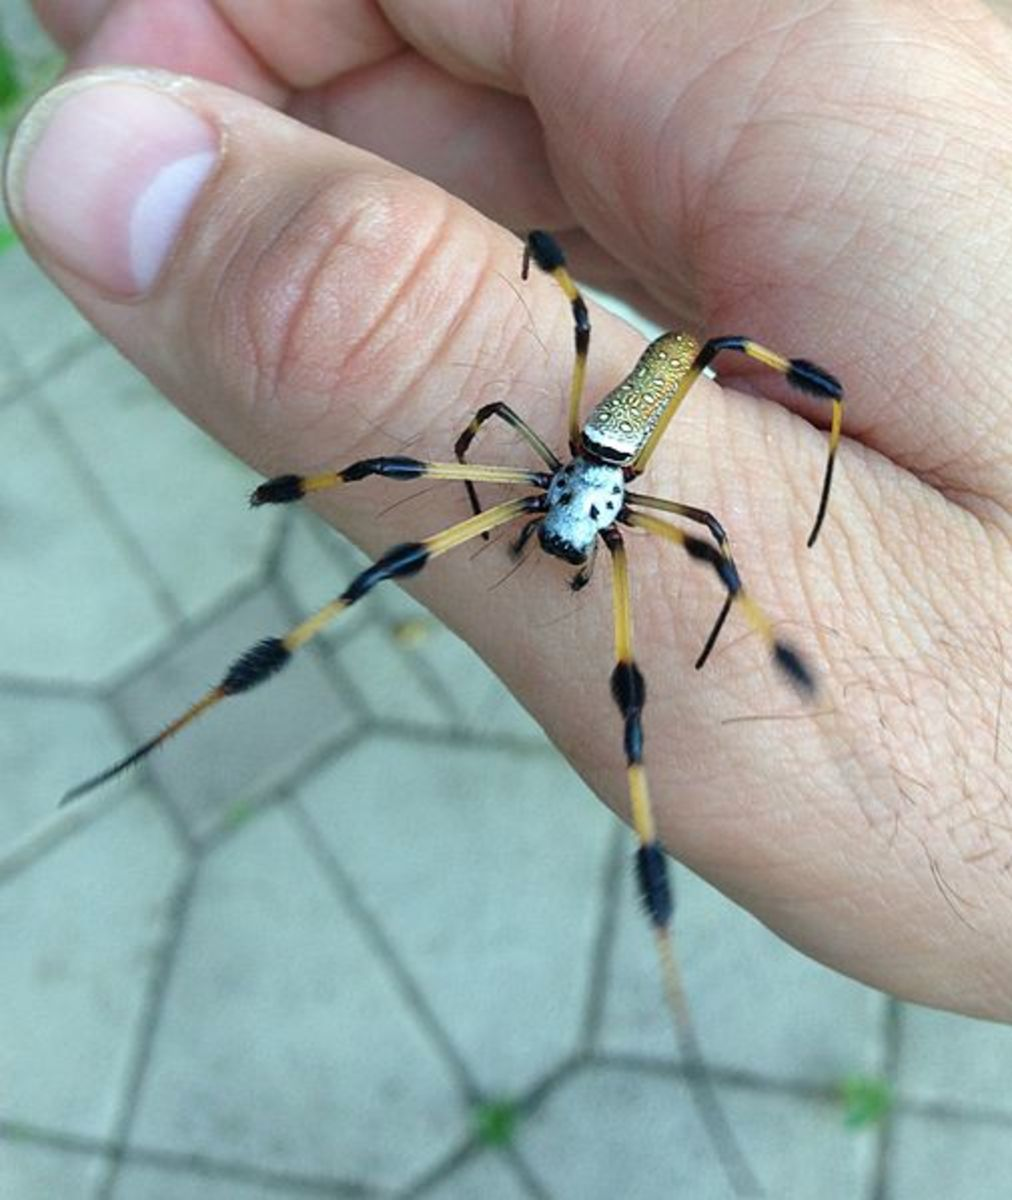 Mature female Nephila clavipes from Davie, Florida. Nephila spiders are known to be the oldest surviving genus of spiders, with a fossilized specimen discovered to be from 165 million years ago.